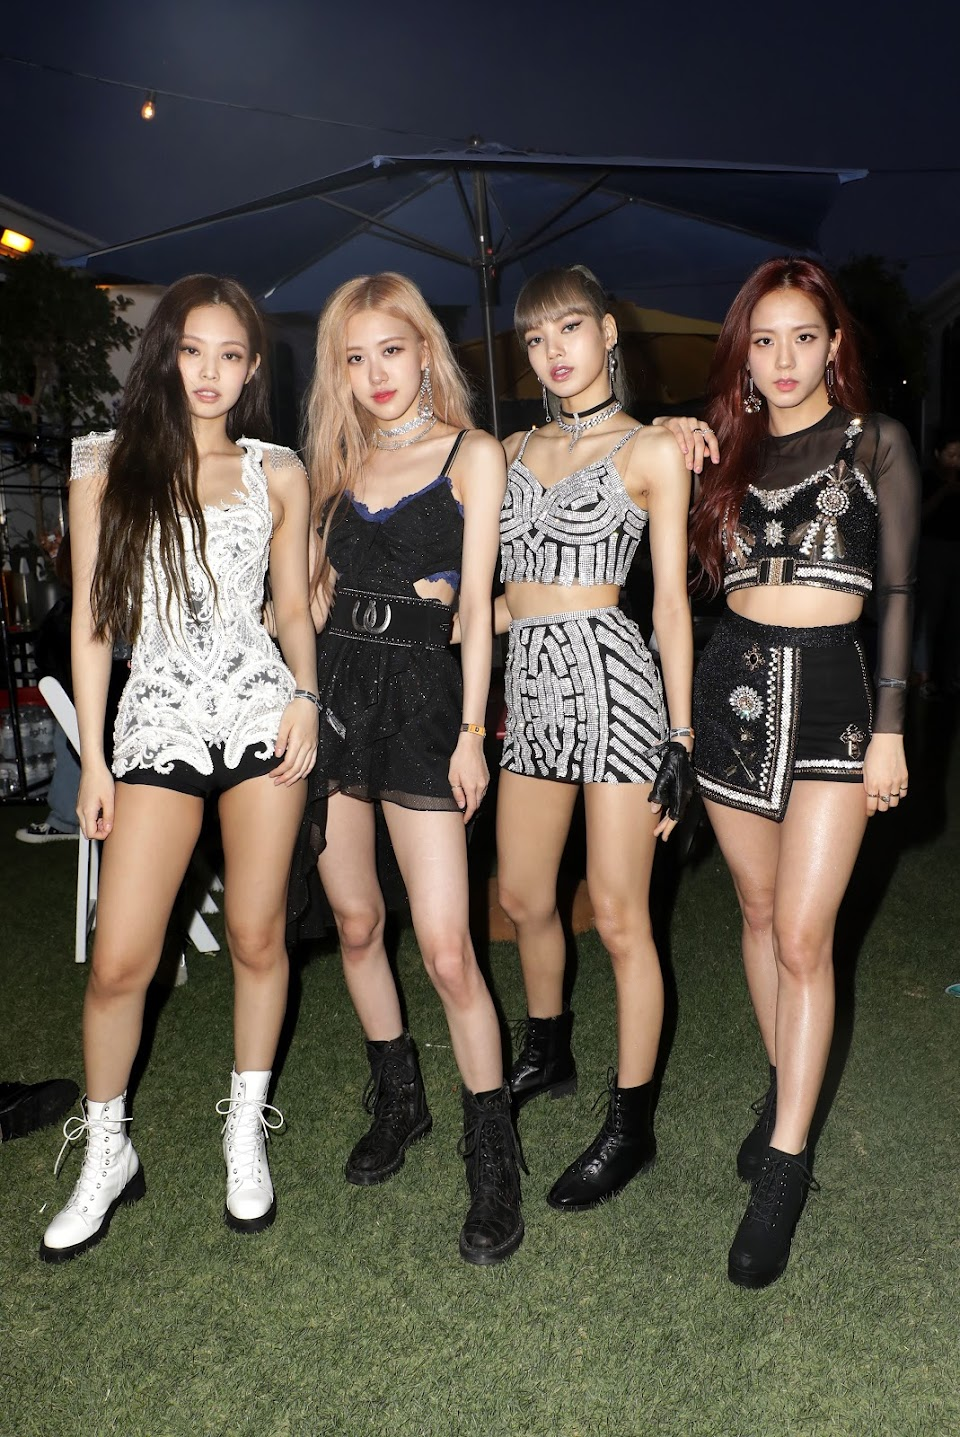 jennie-kim-rose-lisa-and-jisoo-of-blackpink-are-seen-at-the-news-photo-1136588786-1555698768